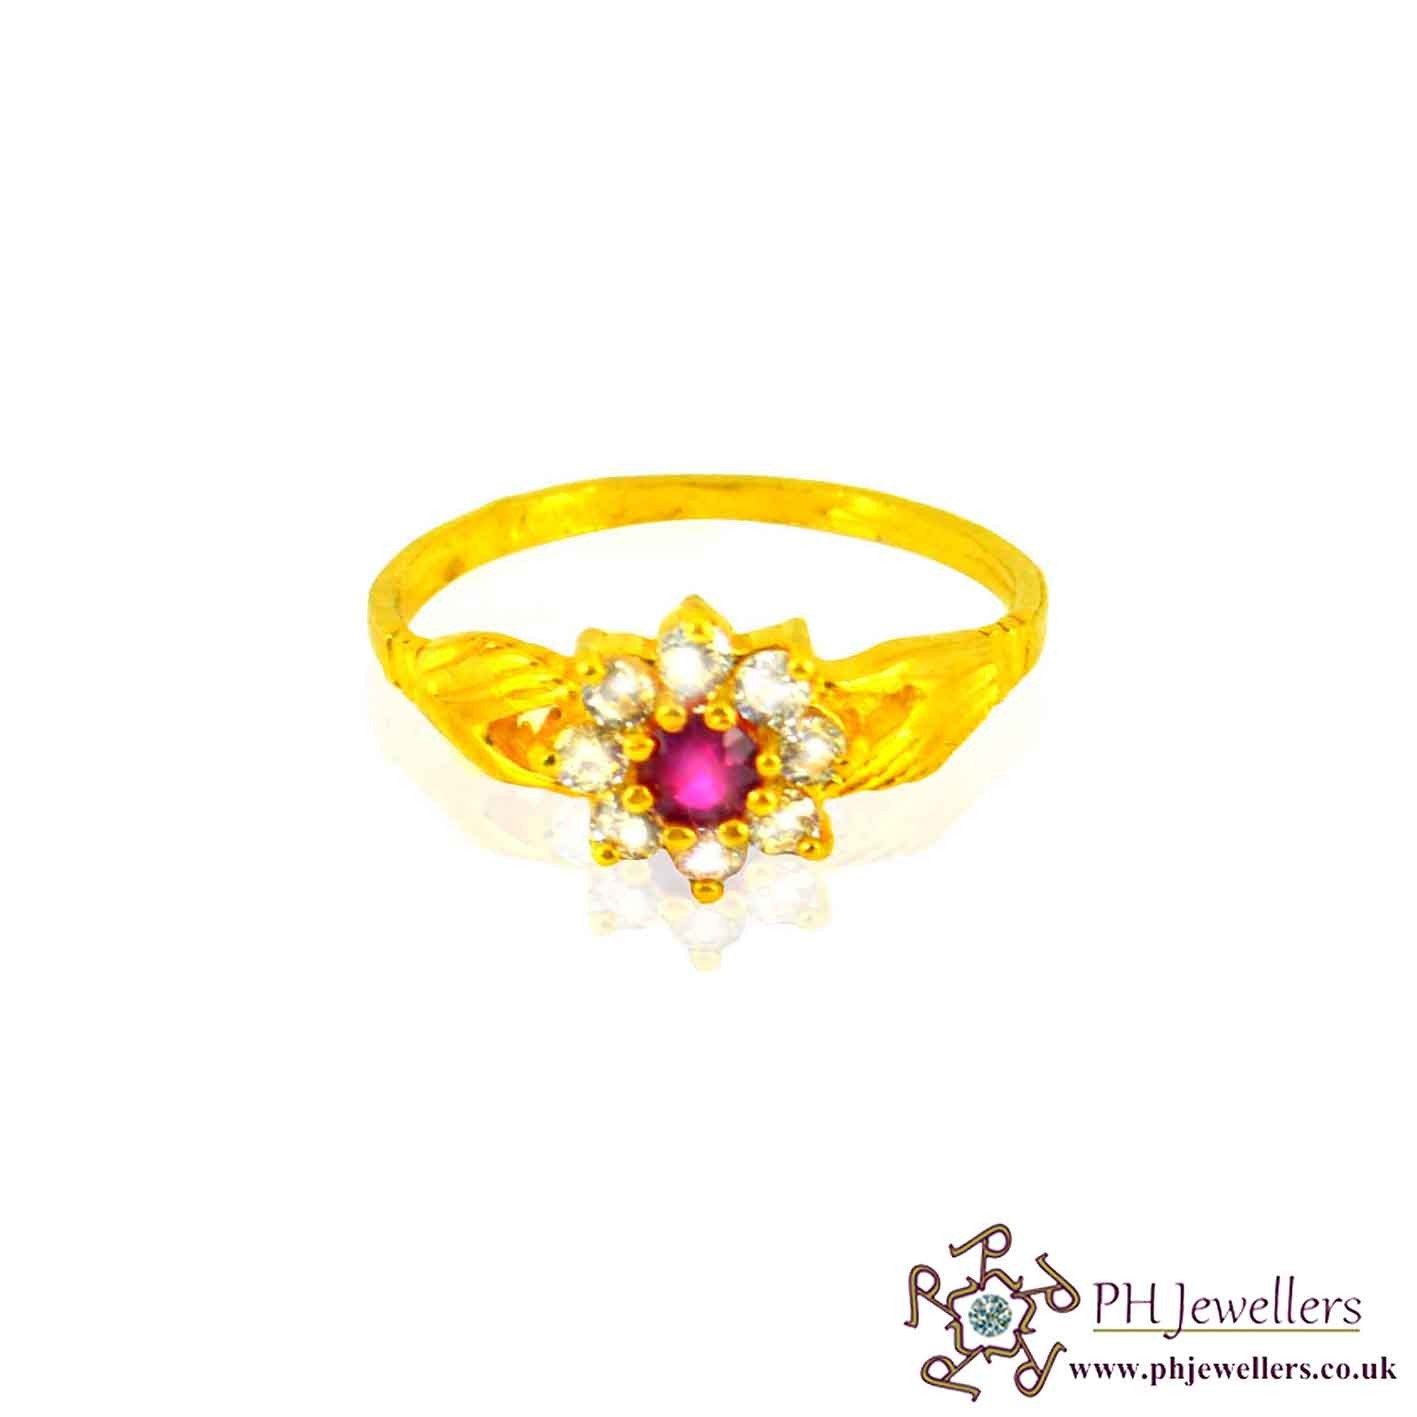 22ct 916 Hallmark Yellow Gold Cluster Round Ruby Size P,Q Ring CZ SR28